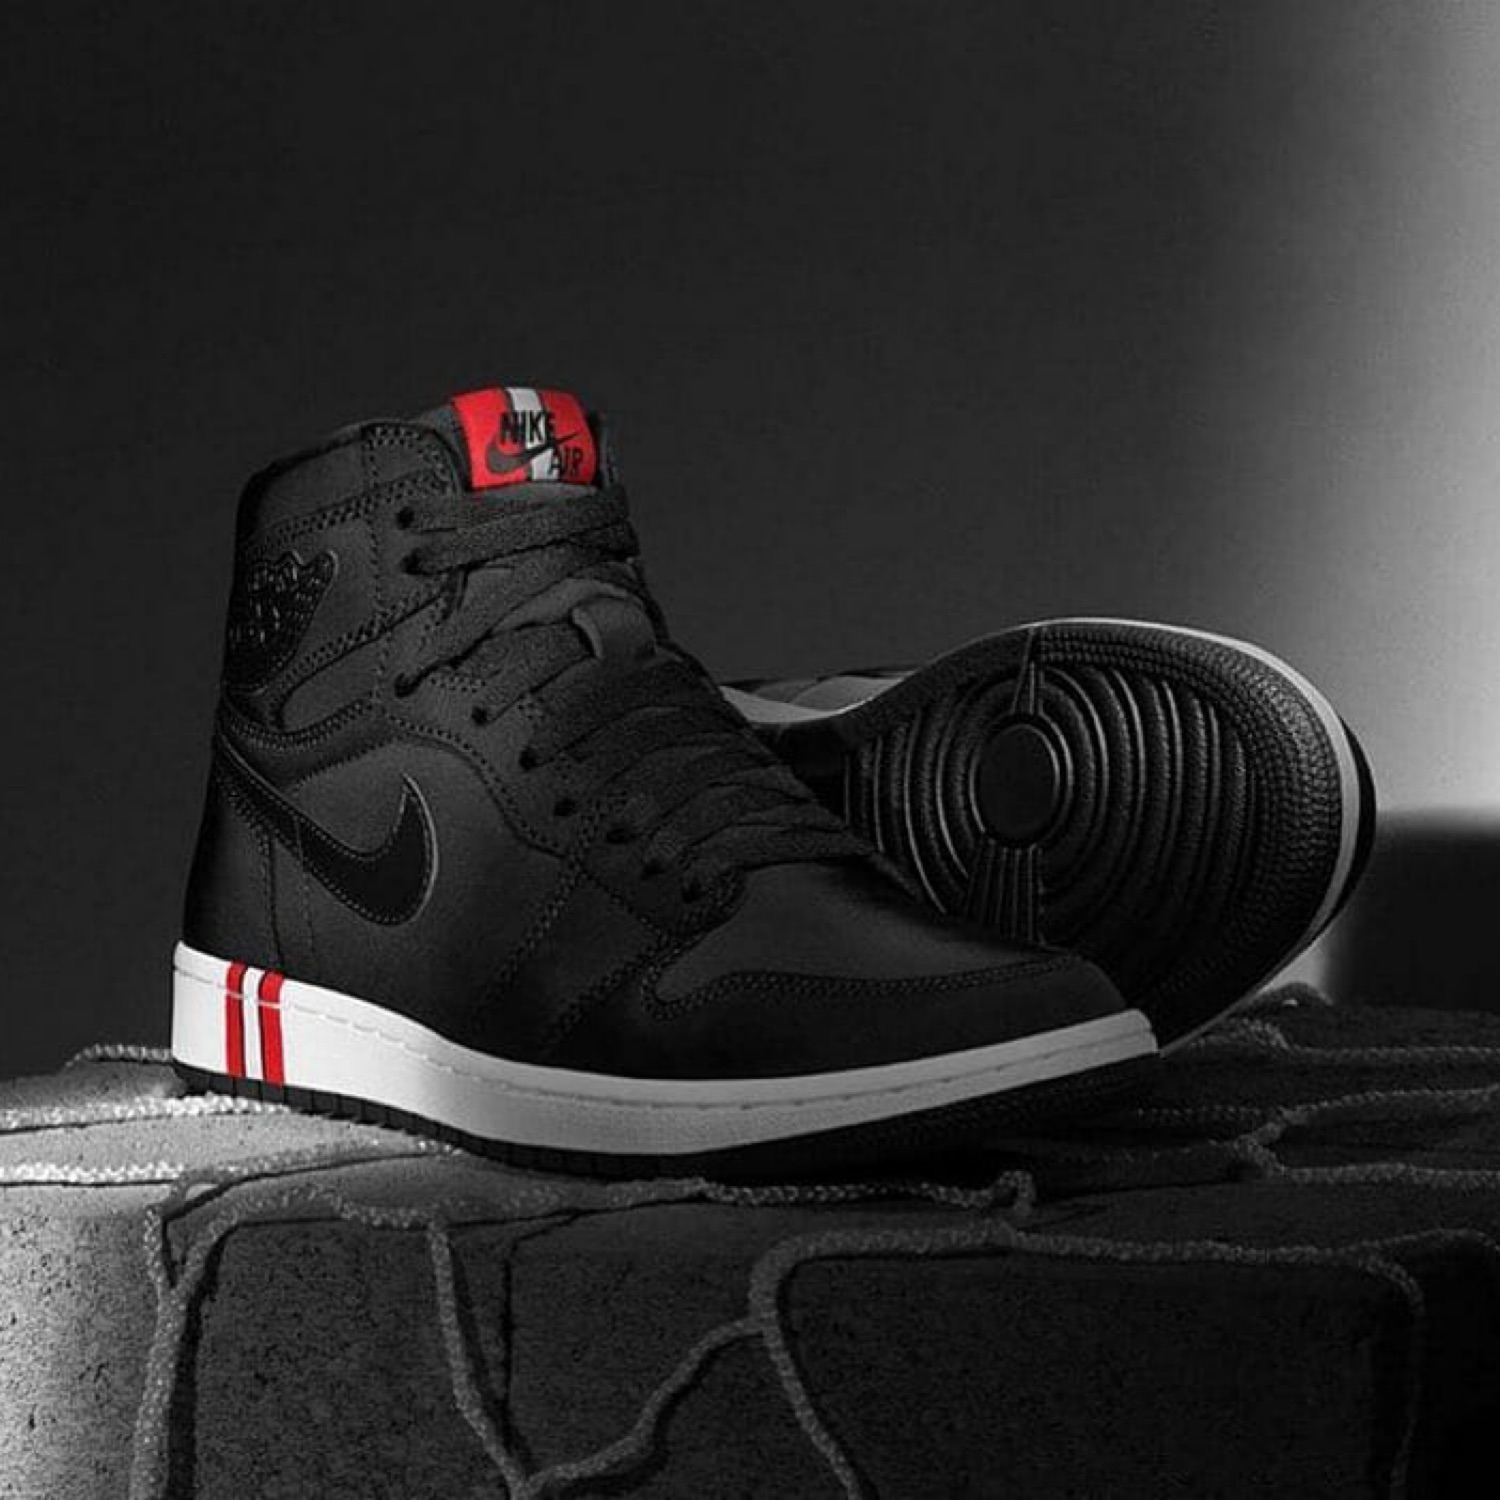 brand new hot new products amazing selection Nike Air Jordan 1 X Psg